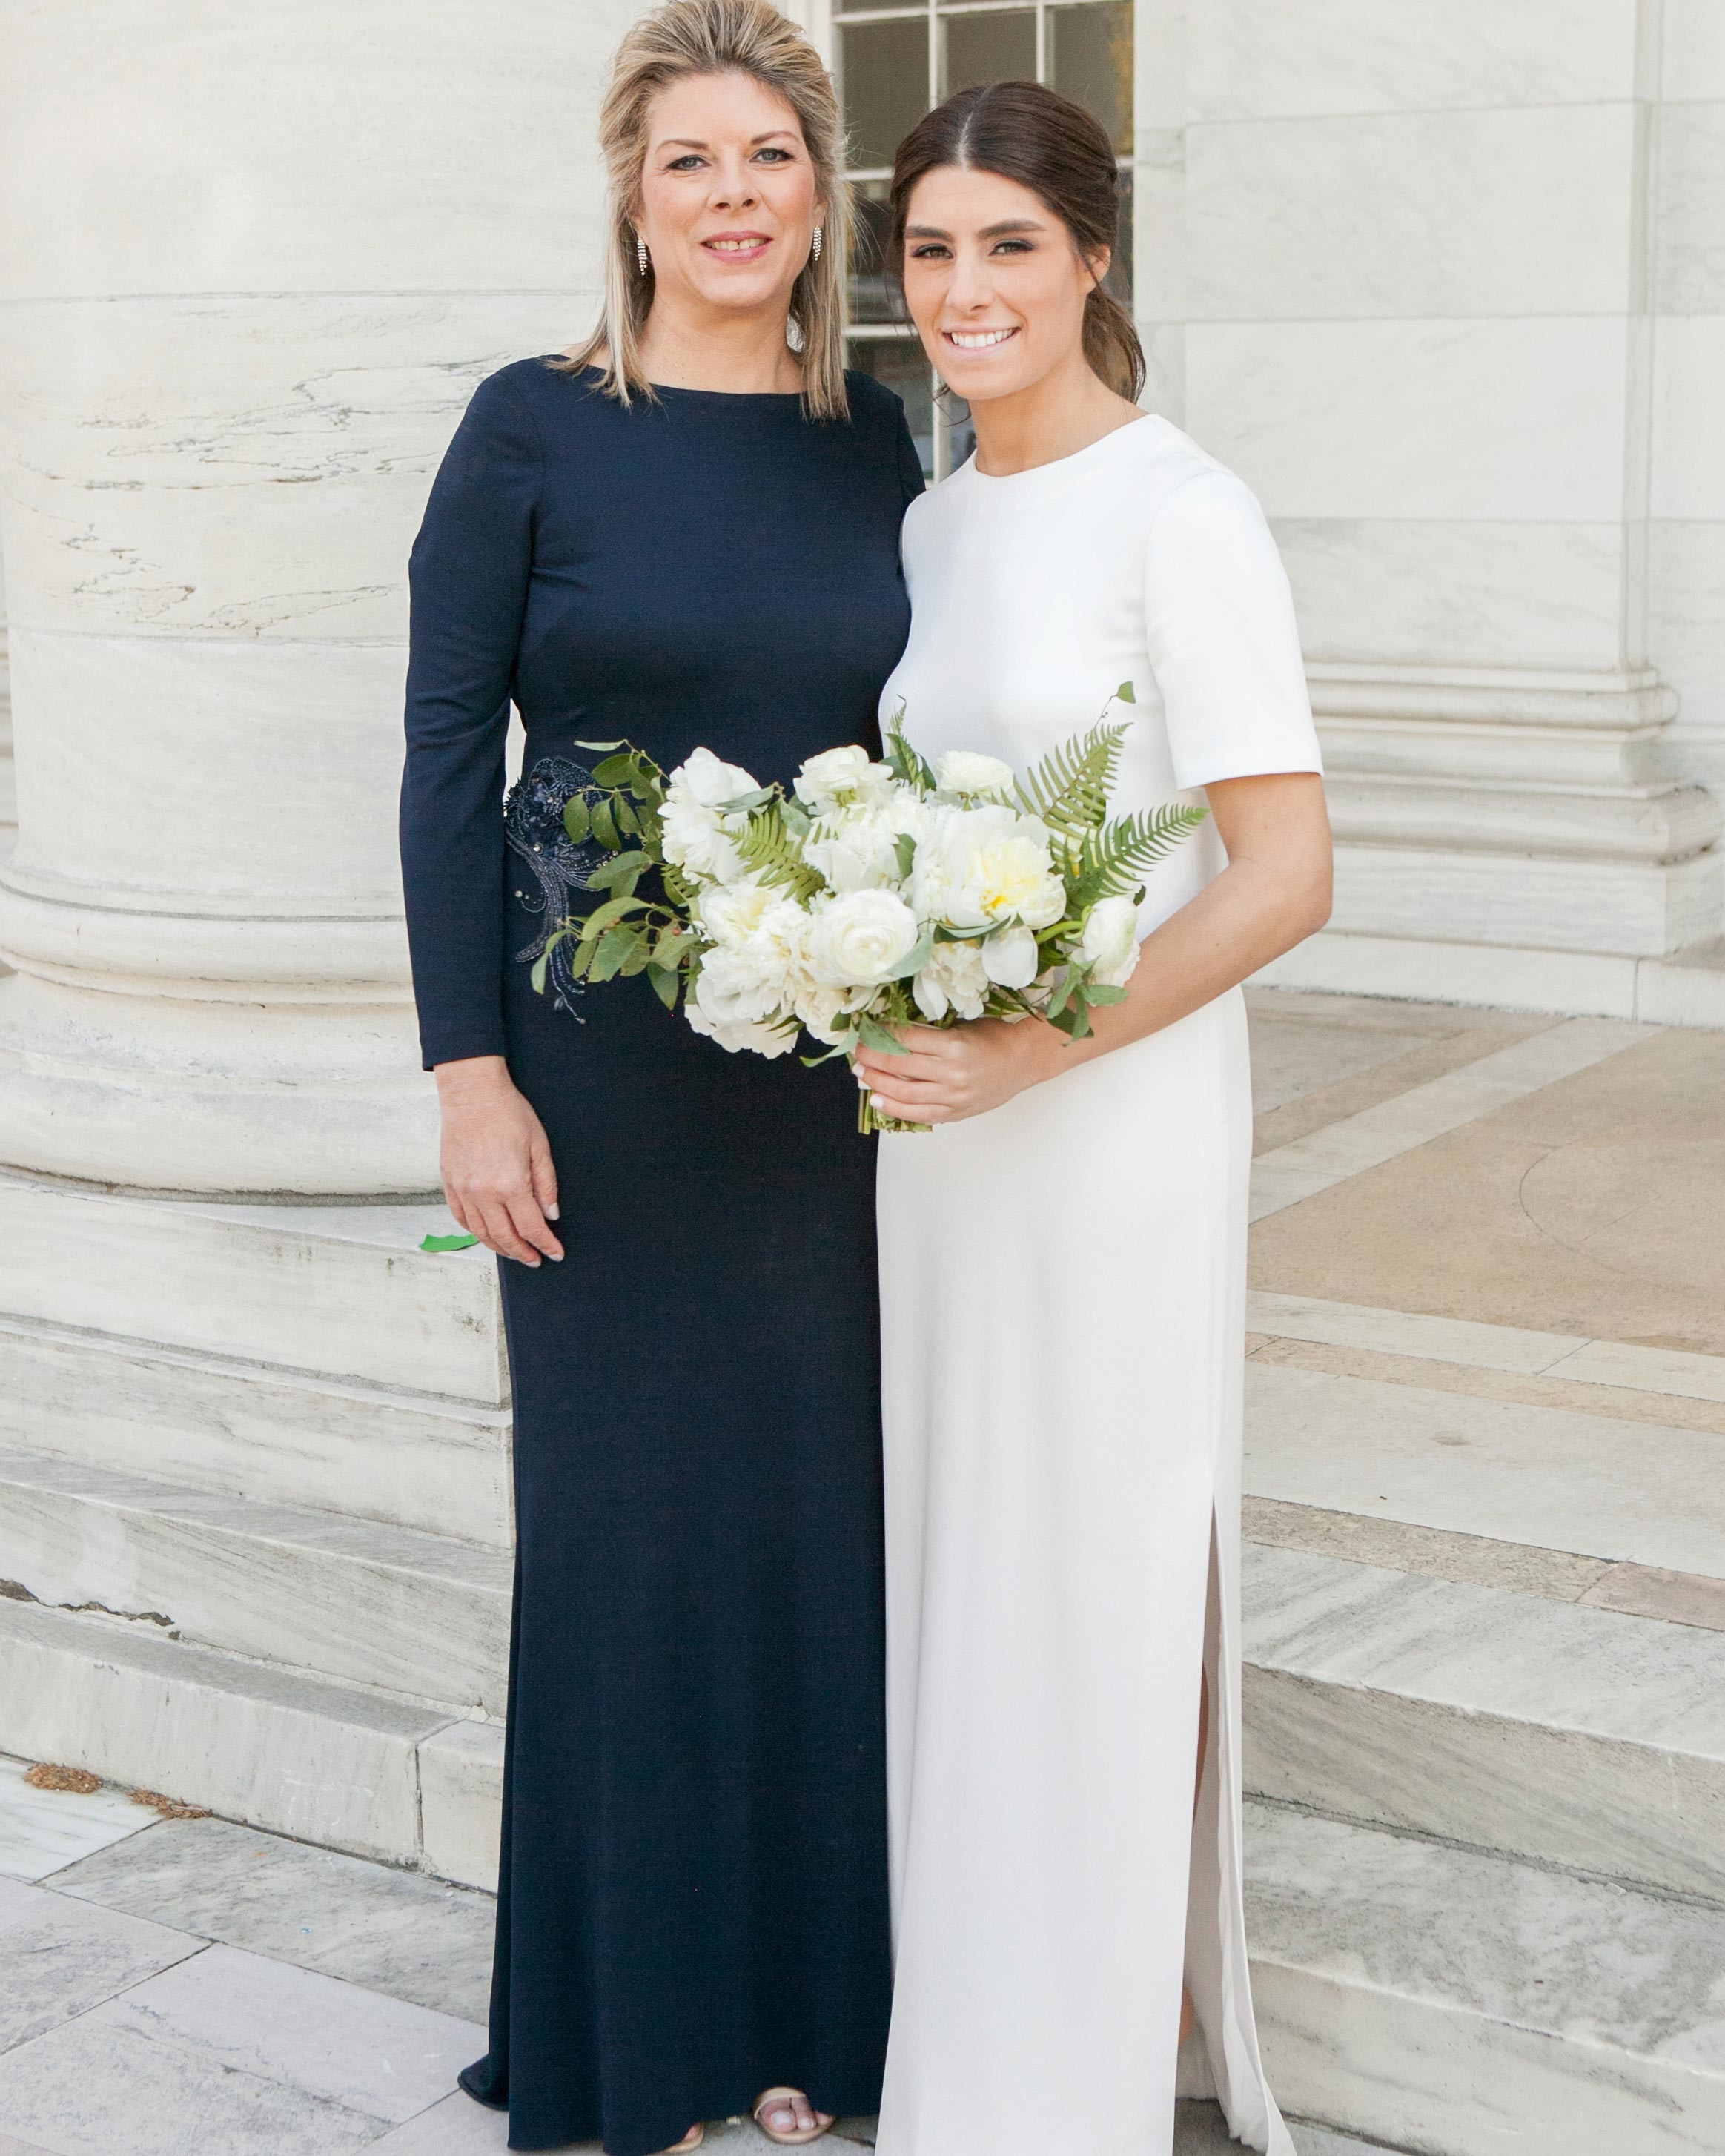 Wedding Gowns Mother Of The Bride: 35 Navy Dresses For Classic Mothers Of The Bride And Groom